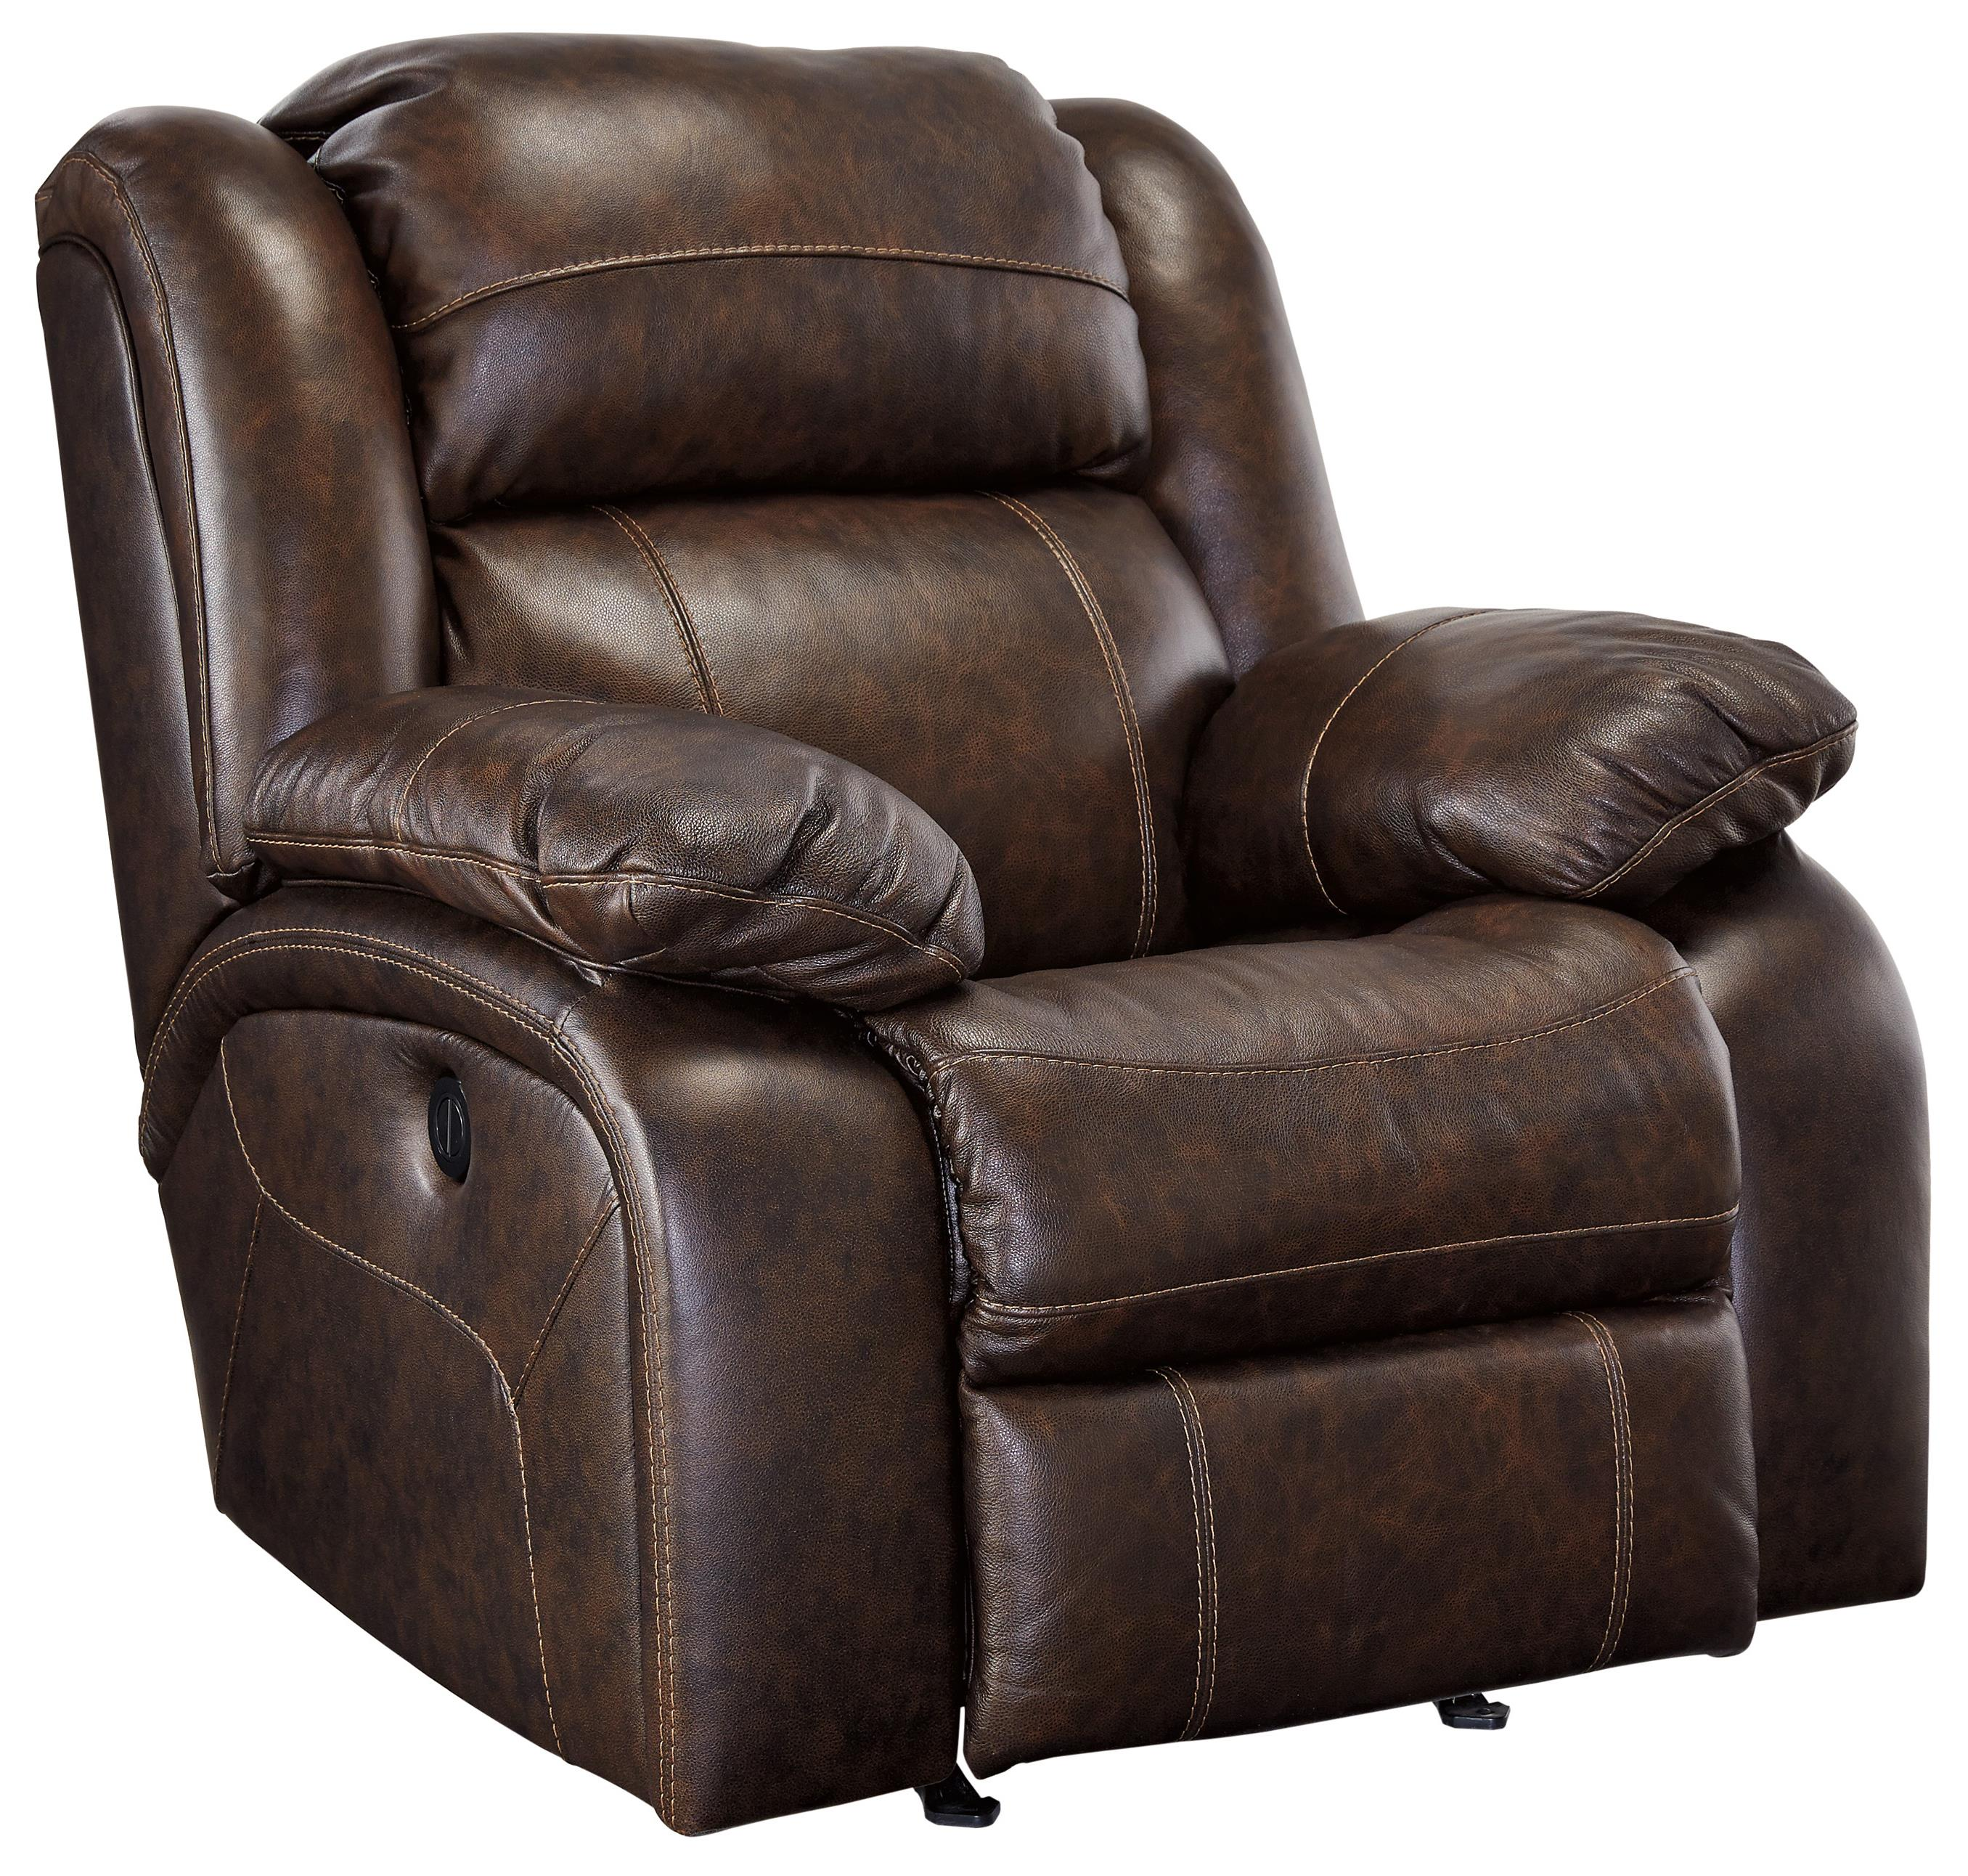 Signature Design by Ashley Branton Power Rocker Recliner - Item Number: U7190198